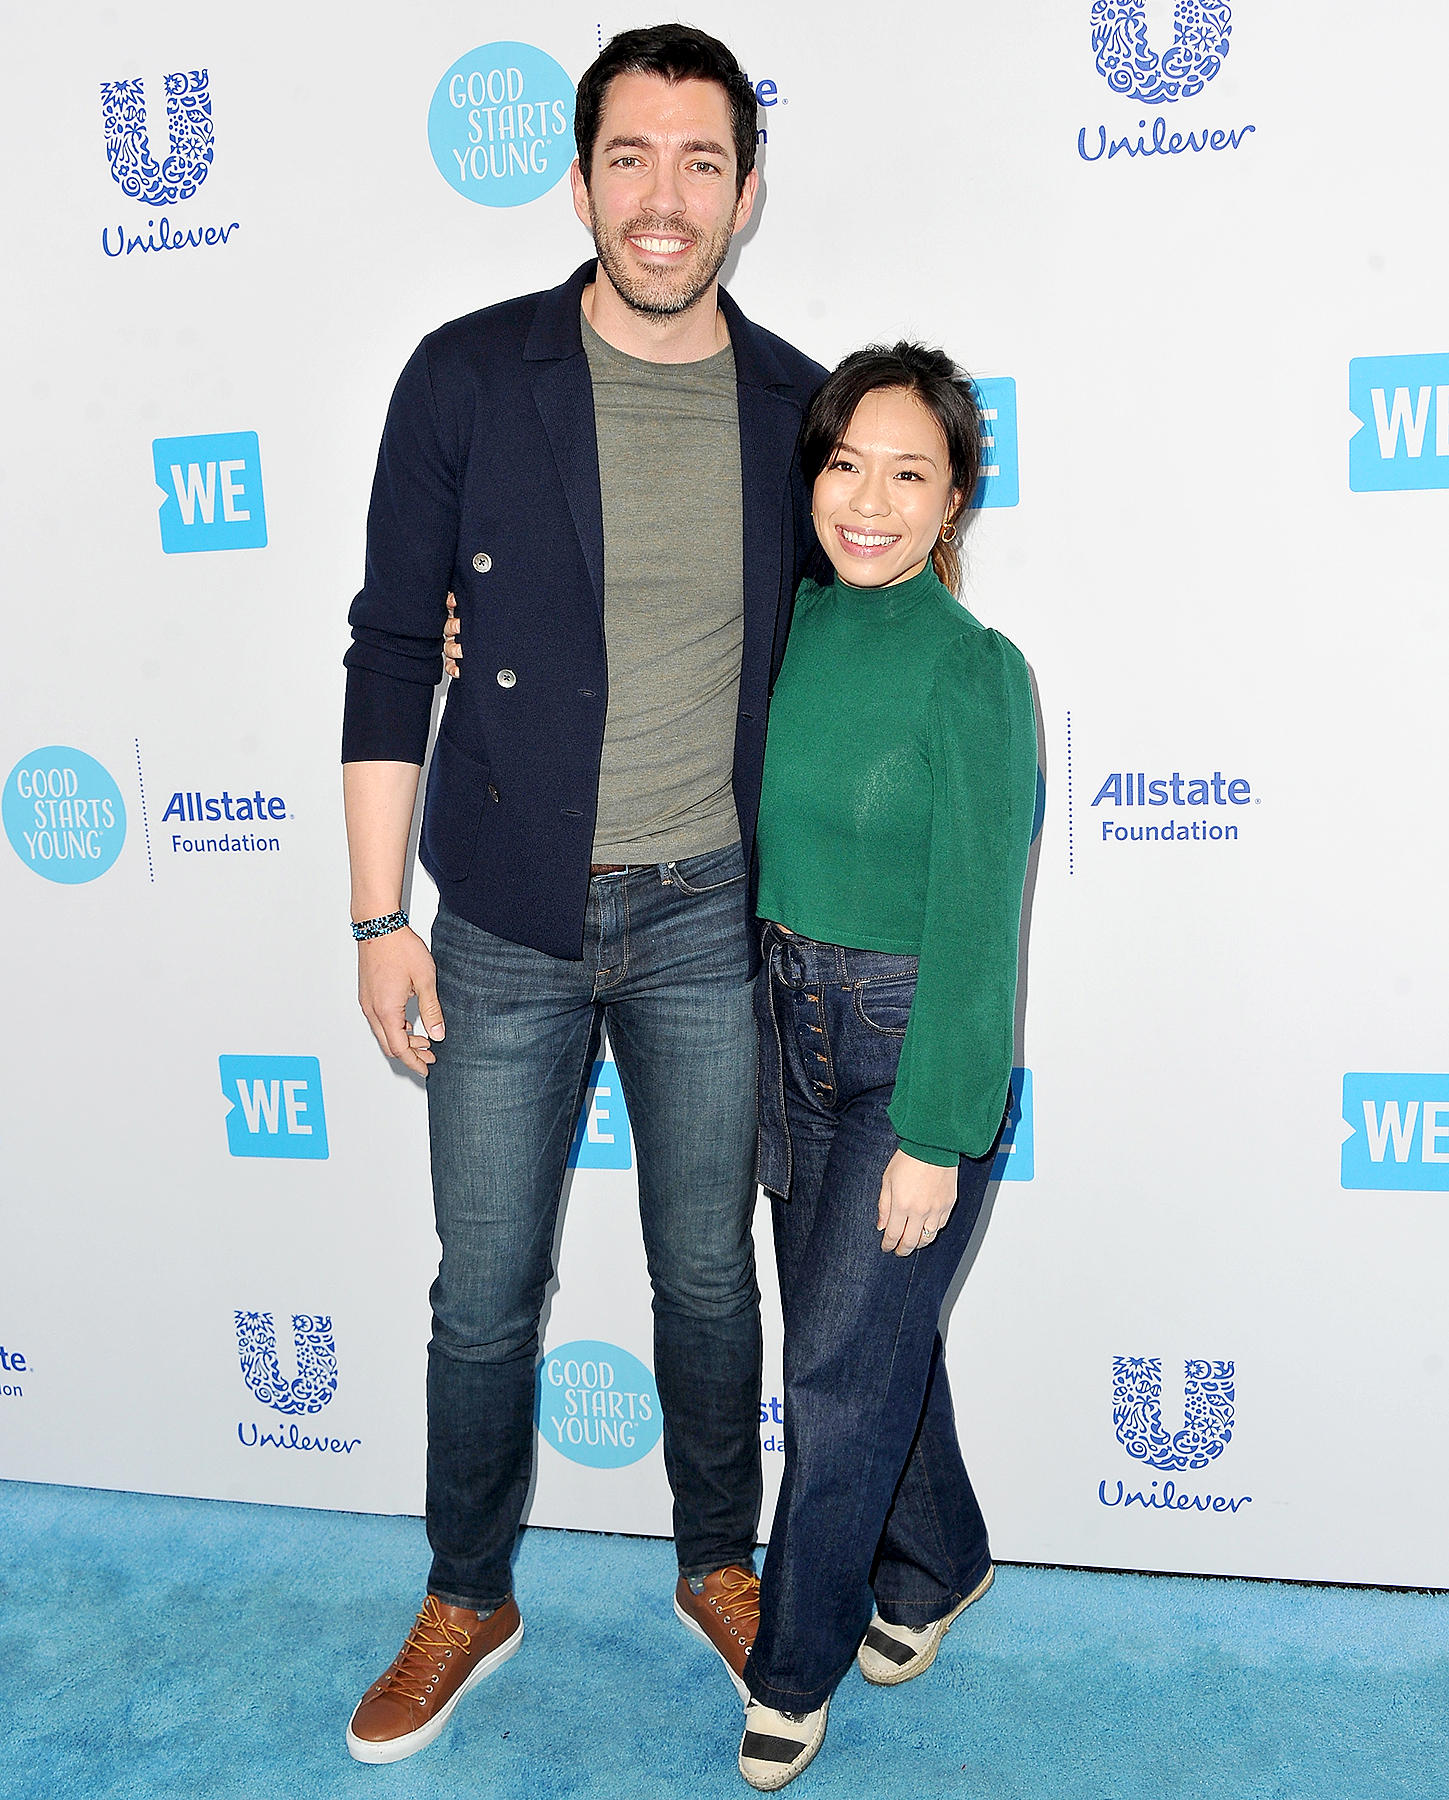 Are property brothers married or hookup